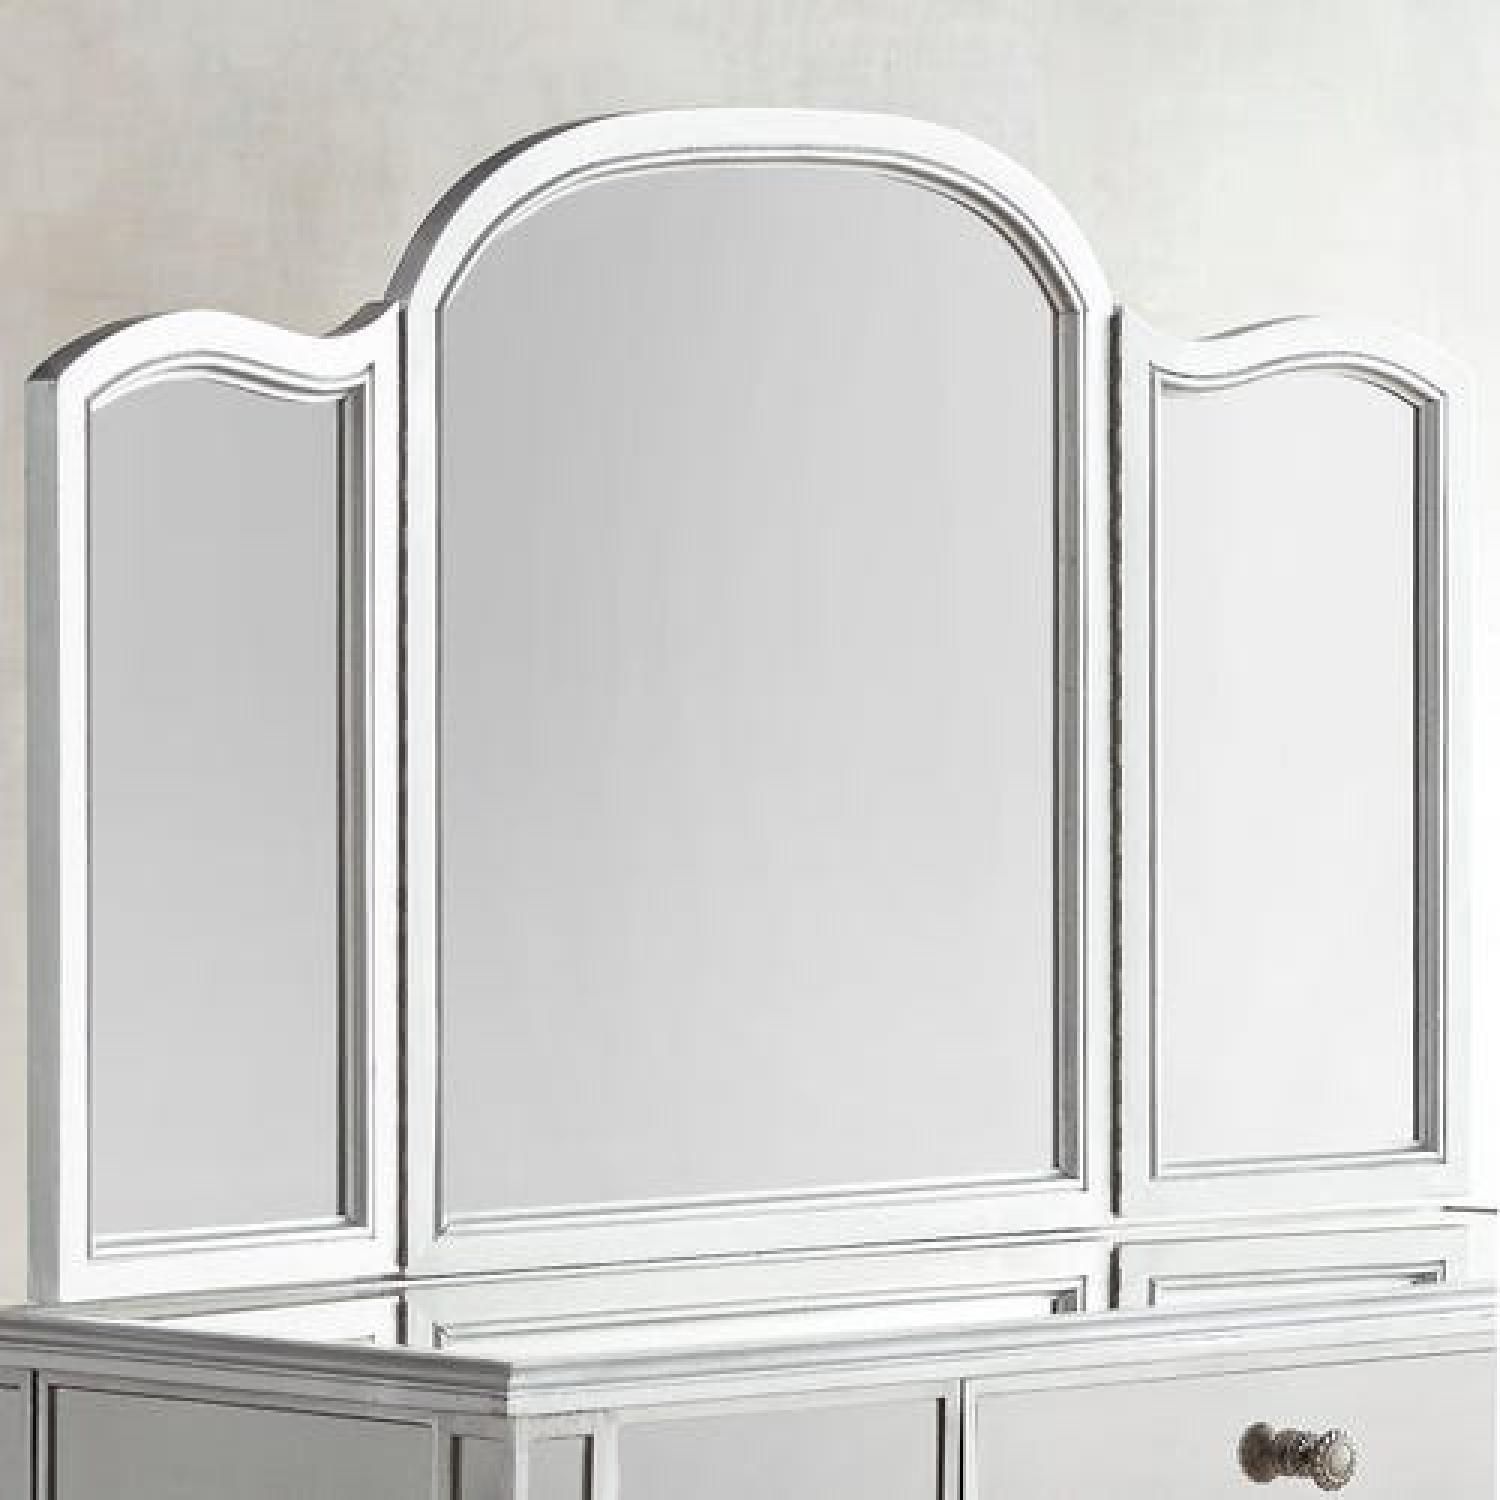 Pier 1 Hayworth Silver Mirror & Vanity Set - image-1